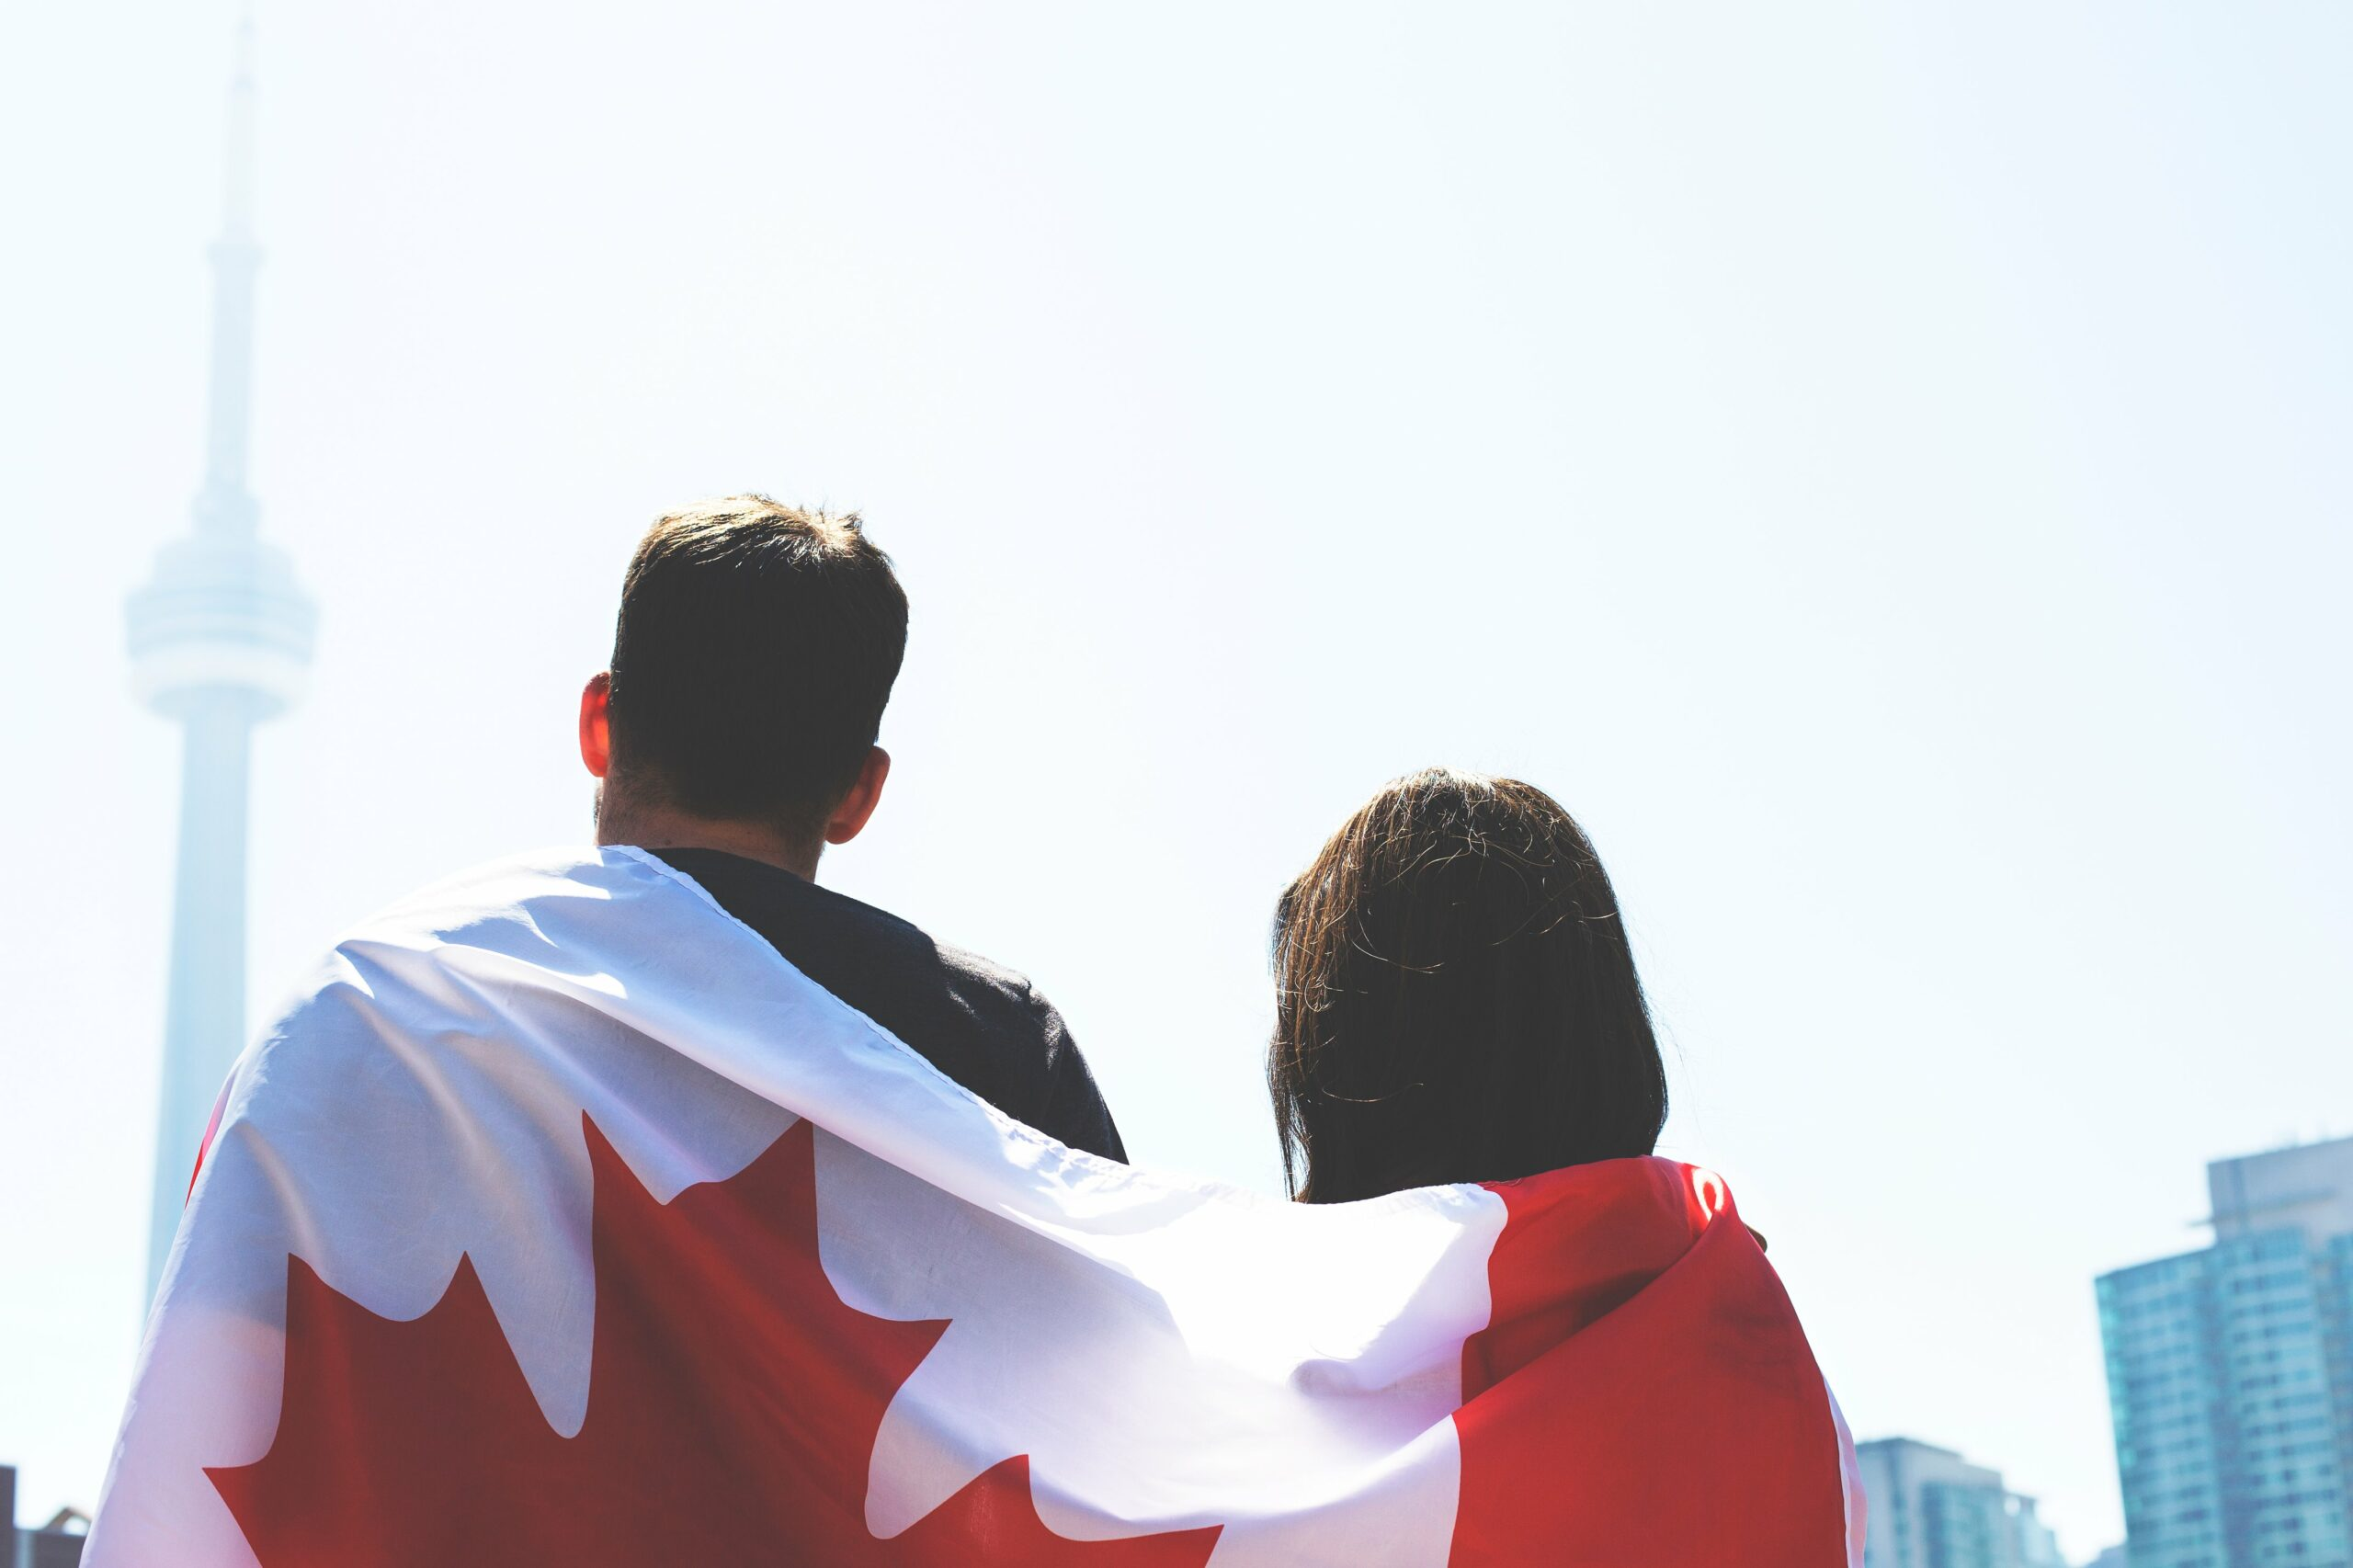 Canadian entrepreneurs with a Canadian flag wrapped around them